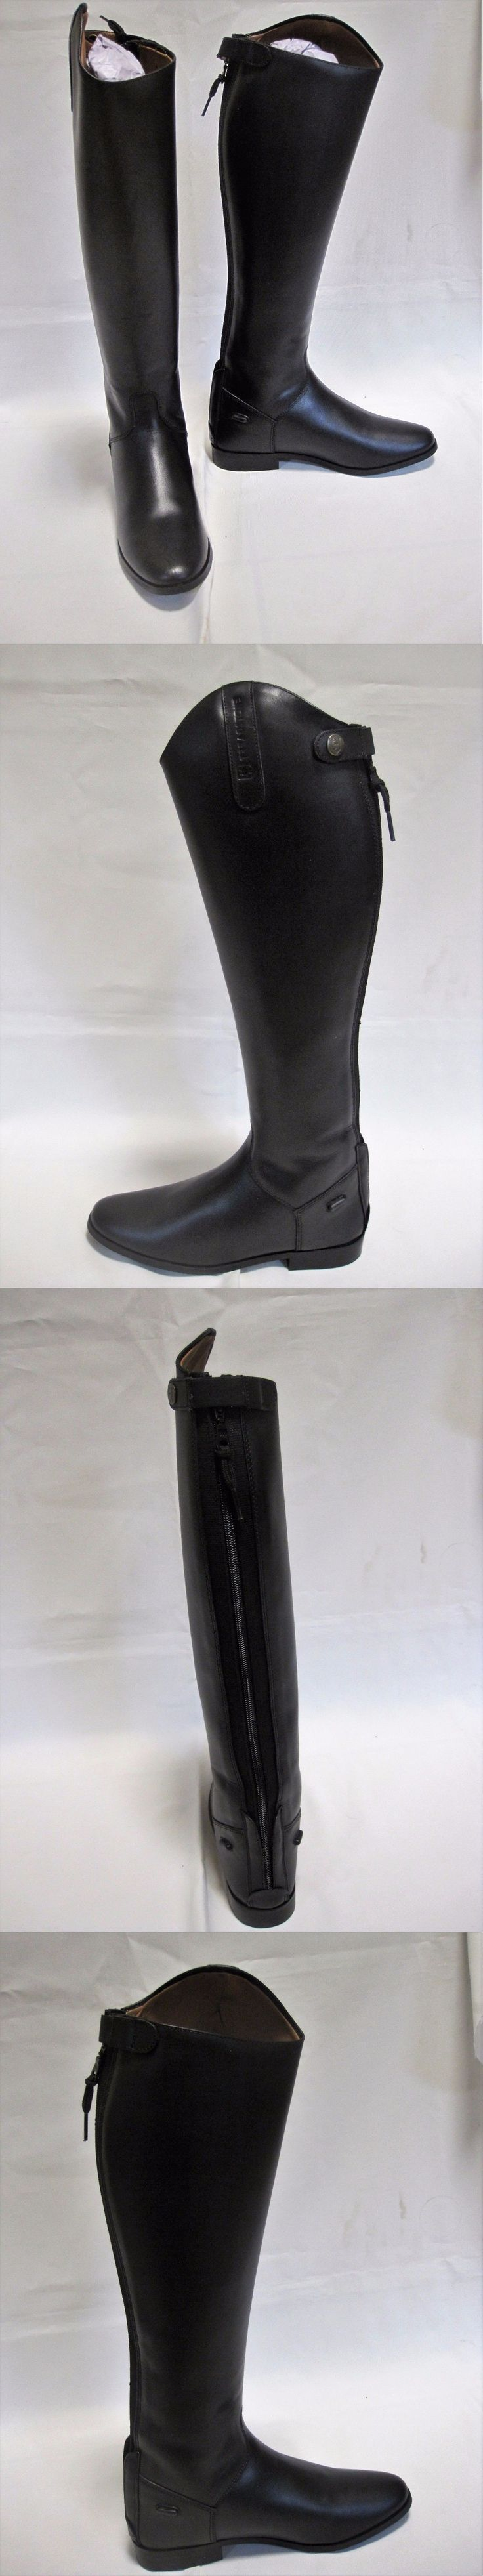 Tall Riding Boots 183382: Treadstone Ladies Equestrian Tall Riding Dress Boot Size 7R Black -> BUY IT NOW ONLY: $42.49 on eBay!